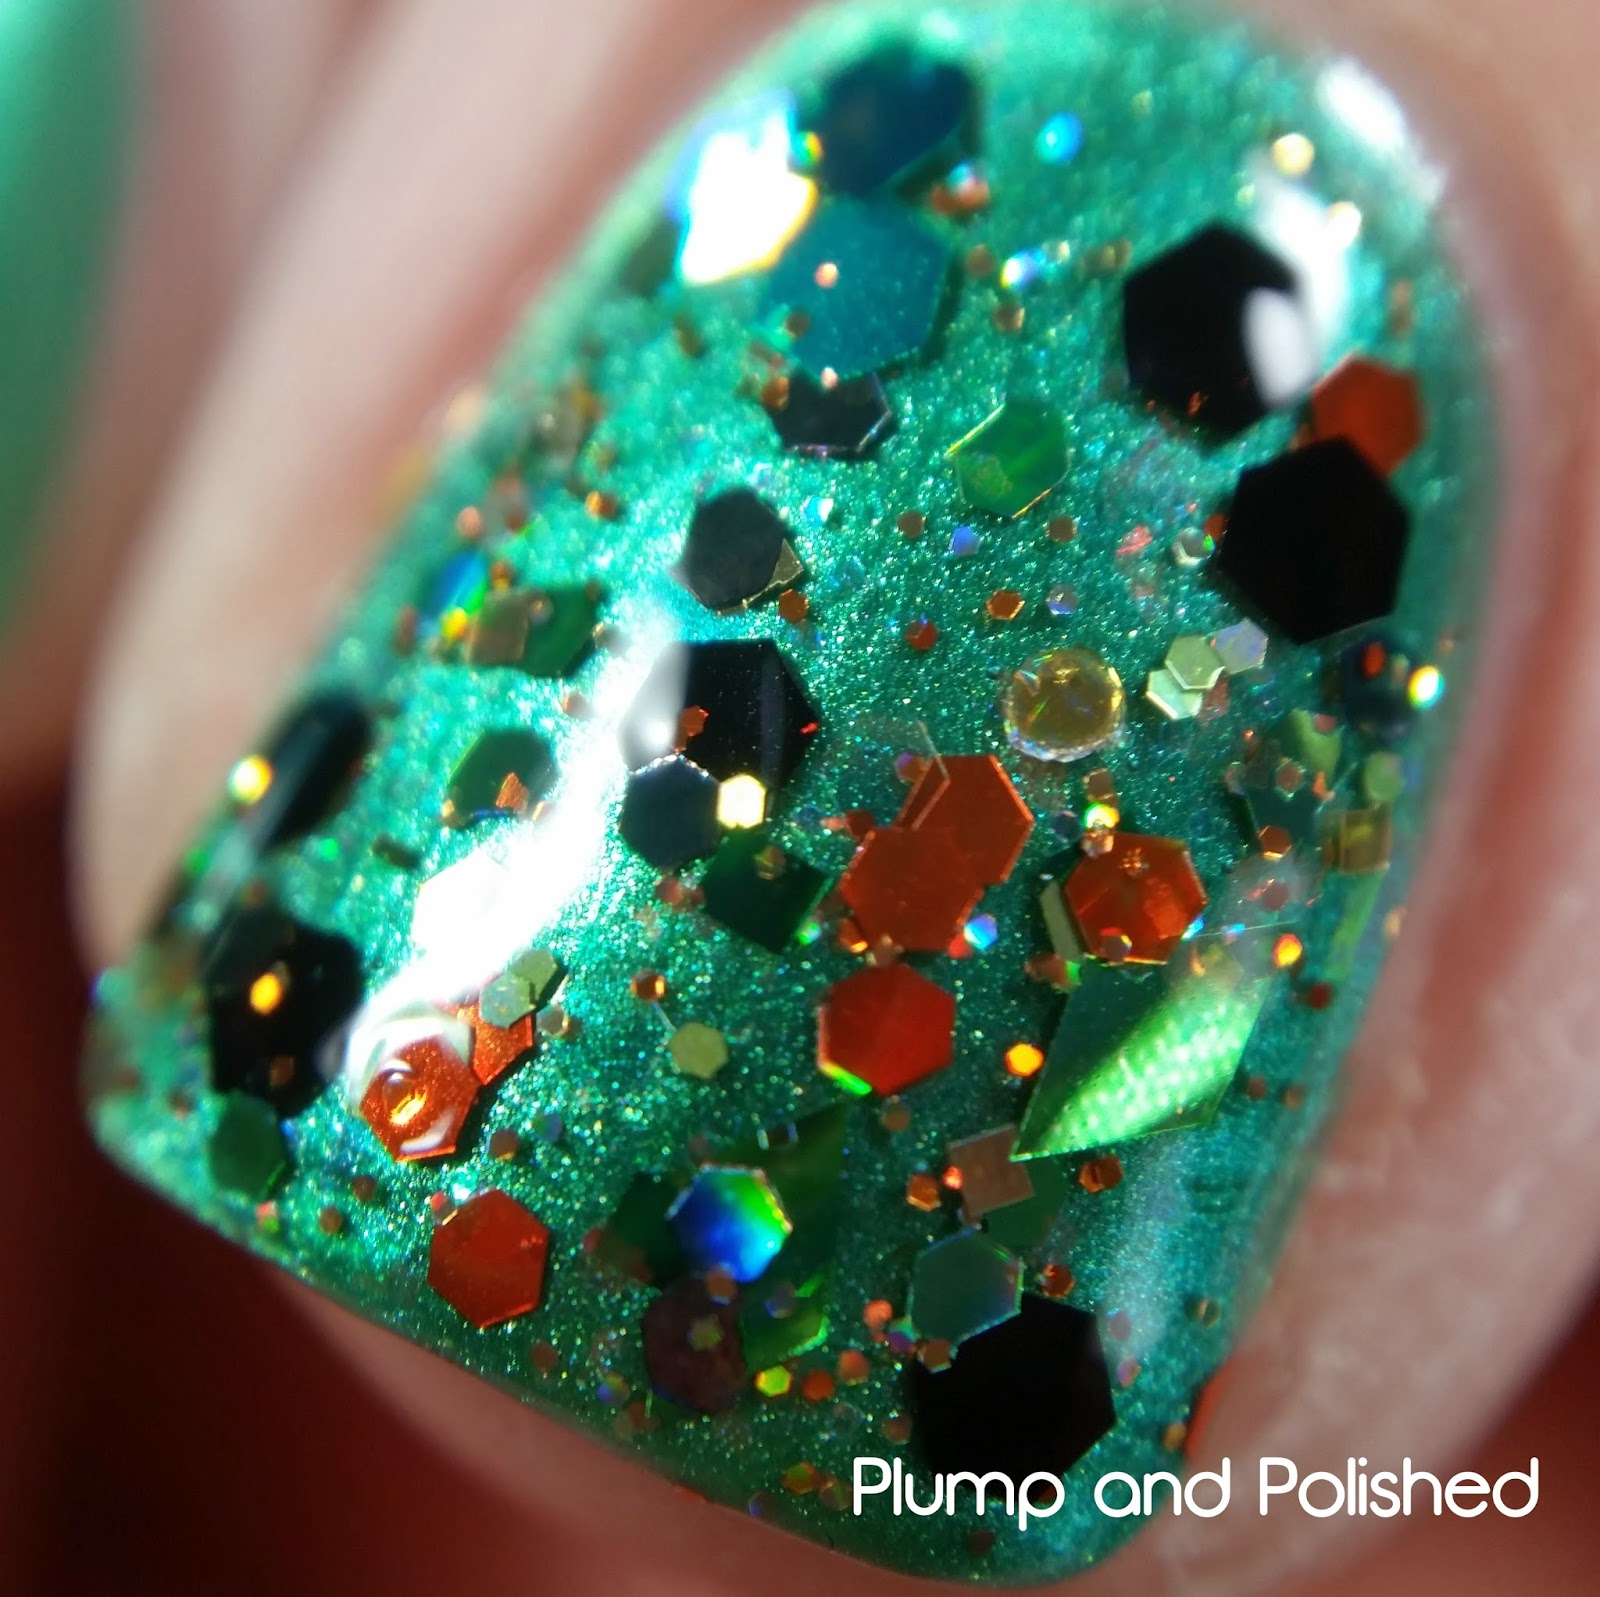 Blue-Eyed Girl Lacquer - Siren's Lucky Shamrock